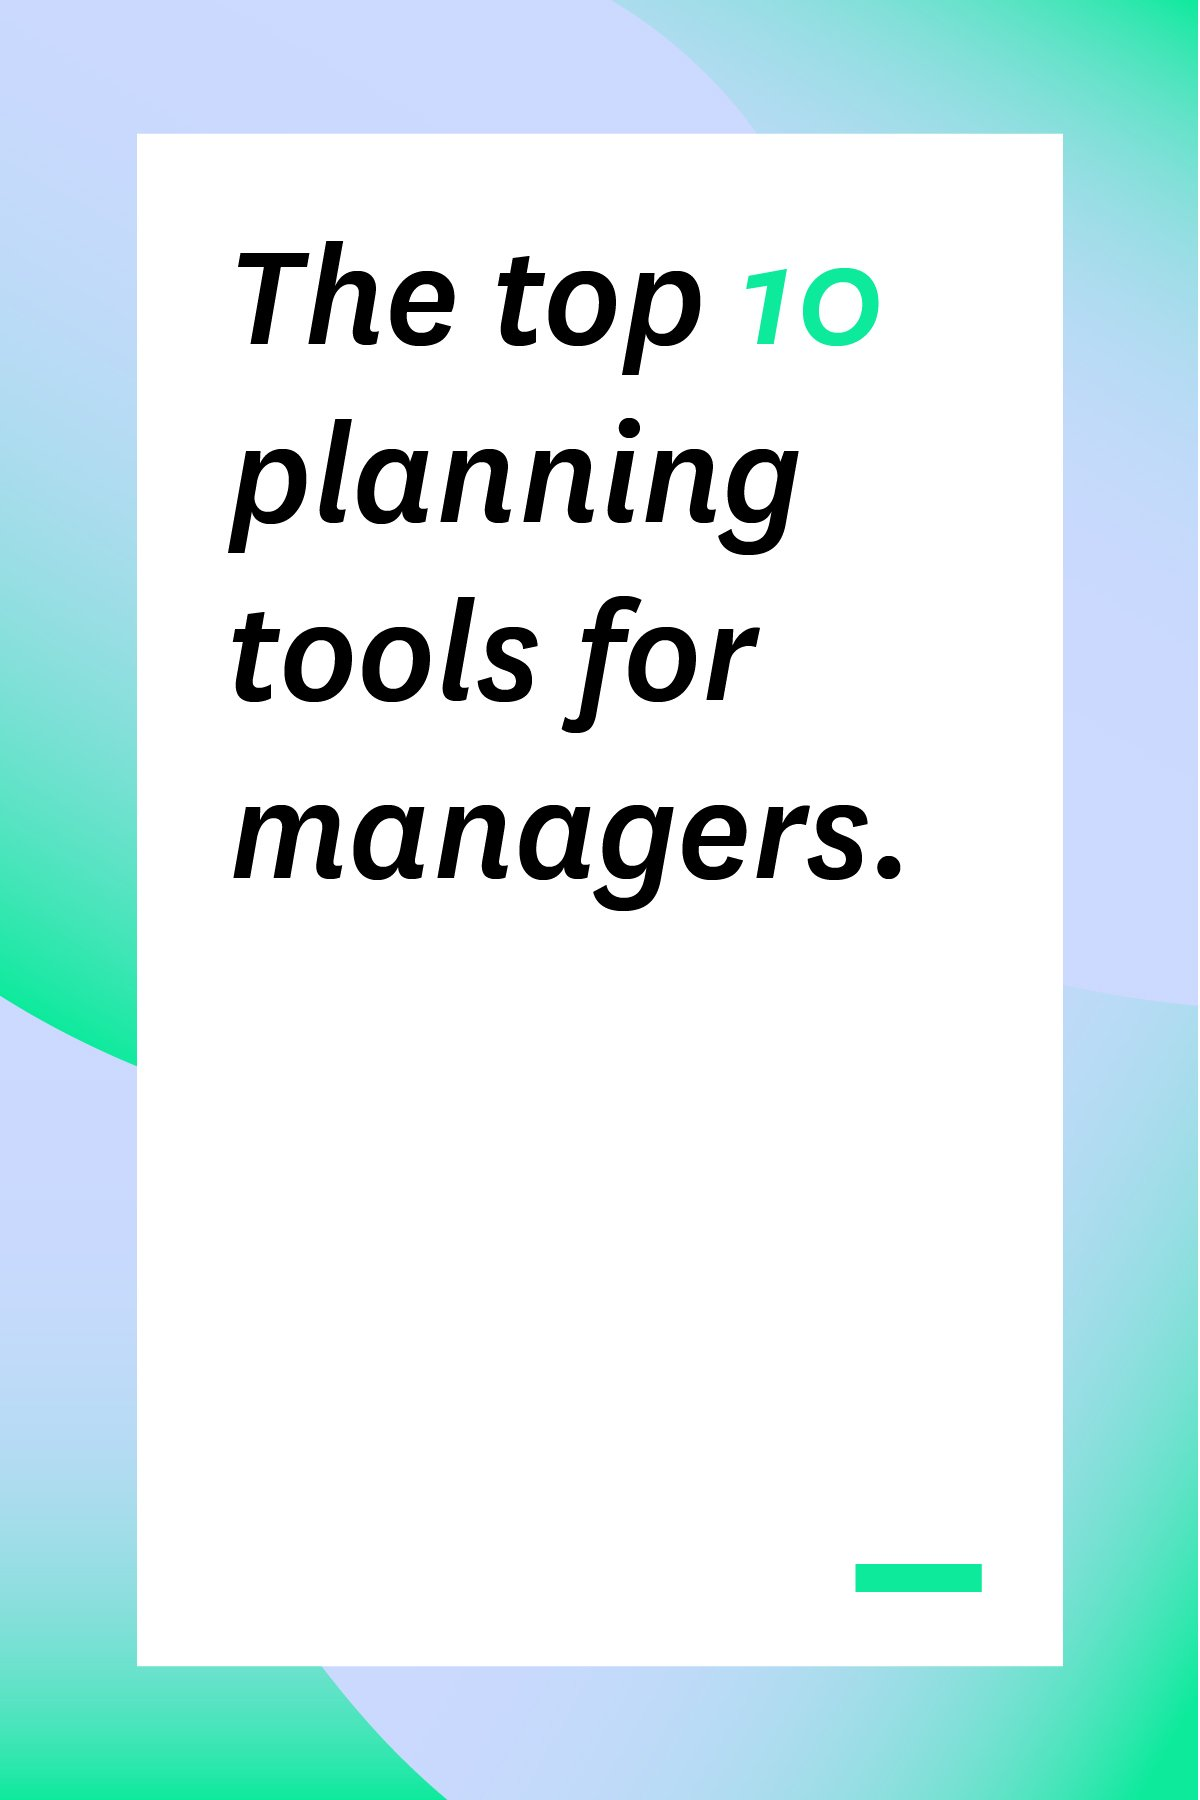 These 10 planning tools will help you manage your employees, schedules, and projects with ease. #projectplanning #officemanagement